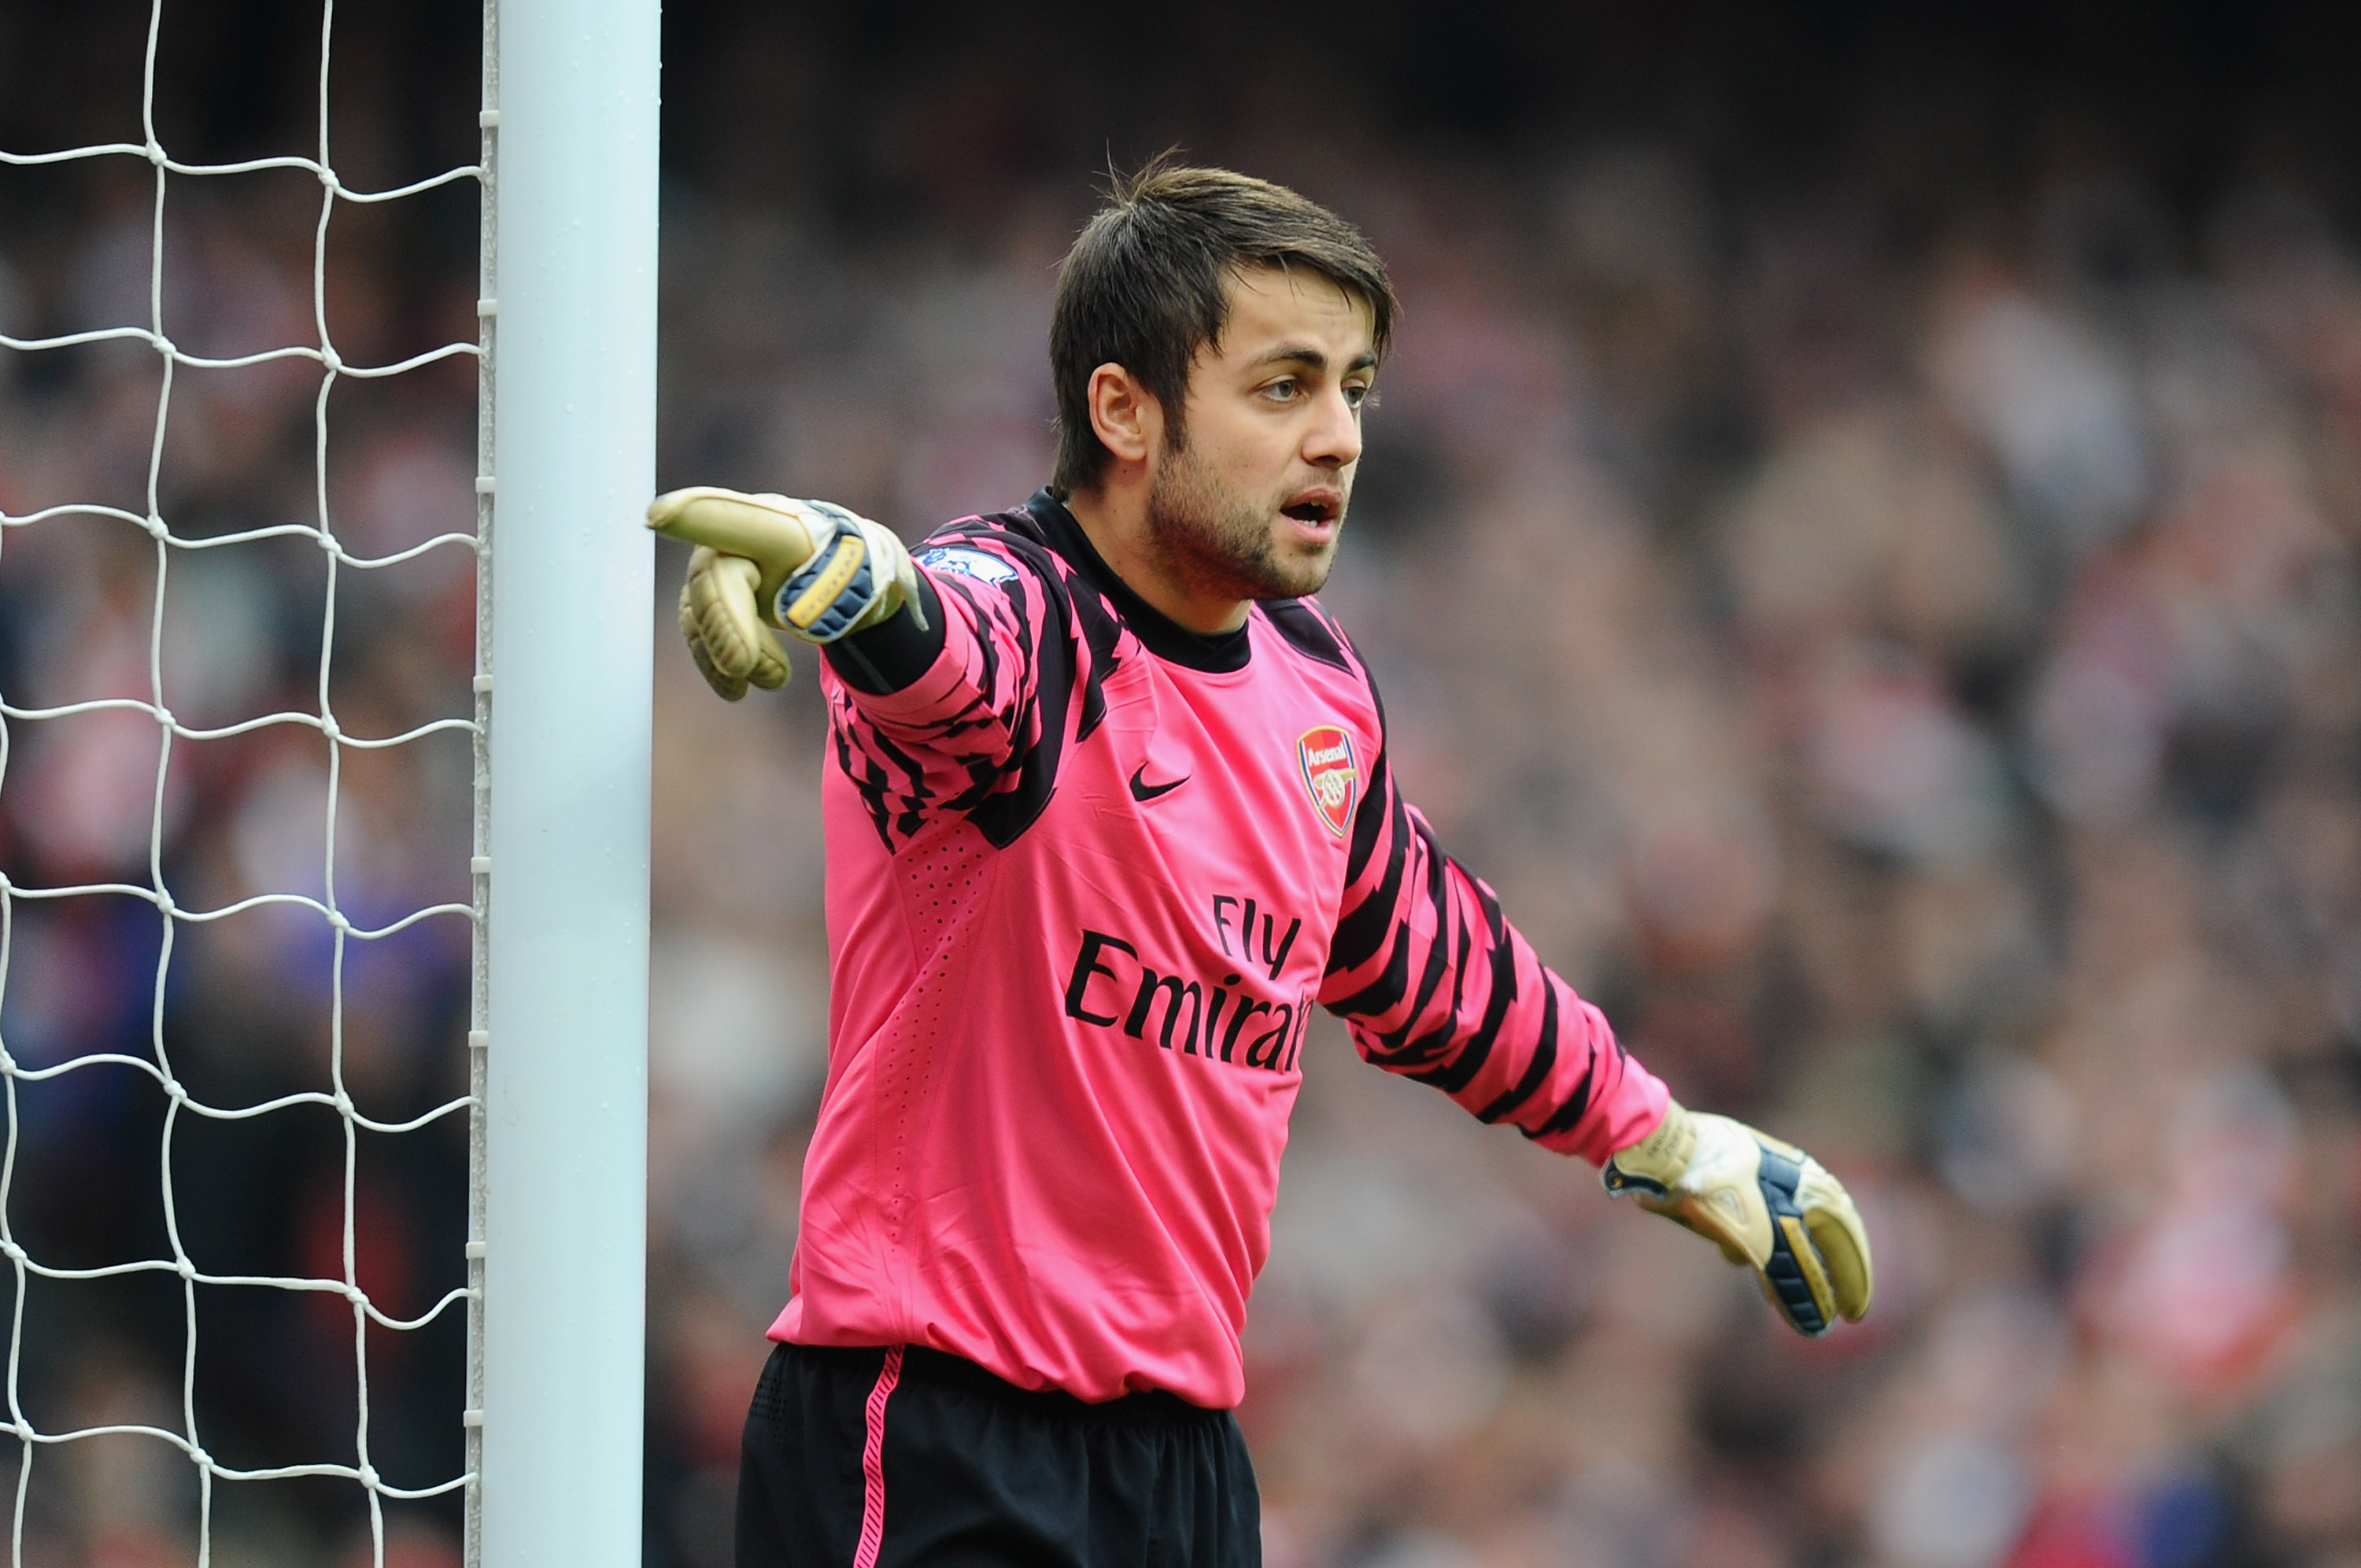 LONDON, ENGLAND - NOVEMBER 20:  Lukasz Fabianski of Arsenal in action during the Barclays Premier League match between Arsenal and Tottenham Hotspur at the Emirates Stadium on November 20, 2010 in London, England.  (Photo by Mike Hewitt/Getty Images)